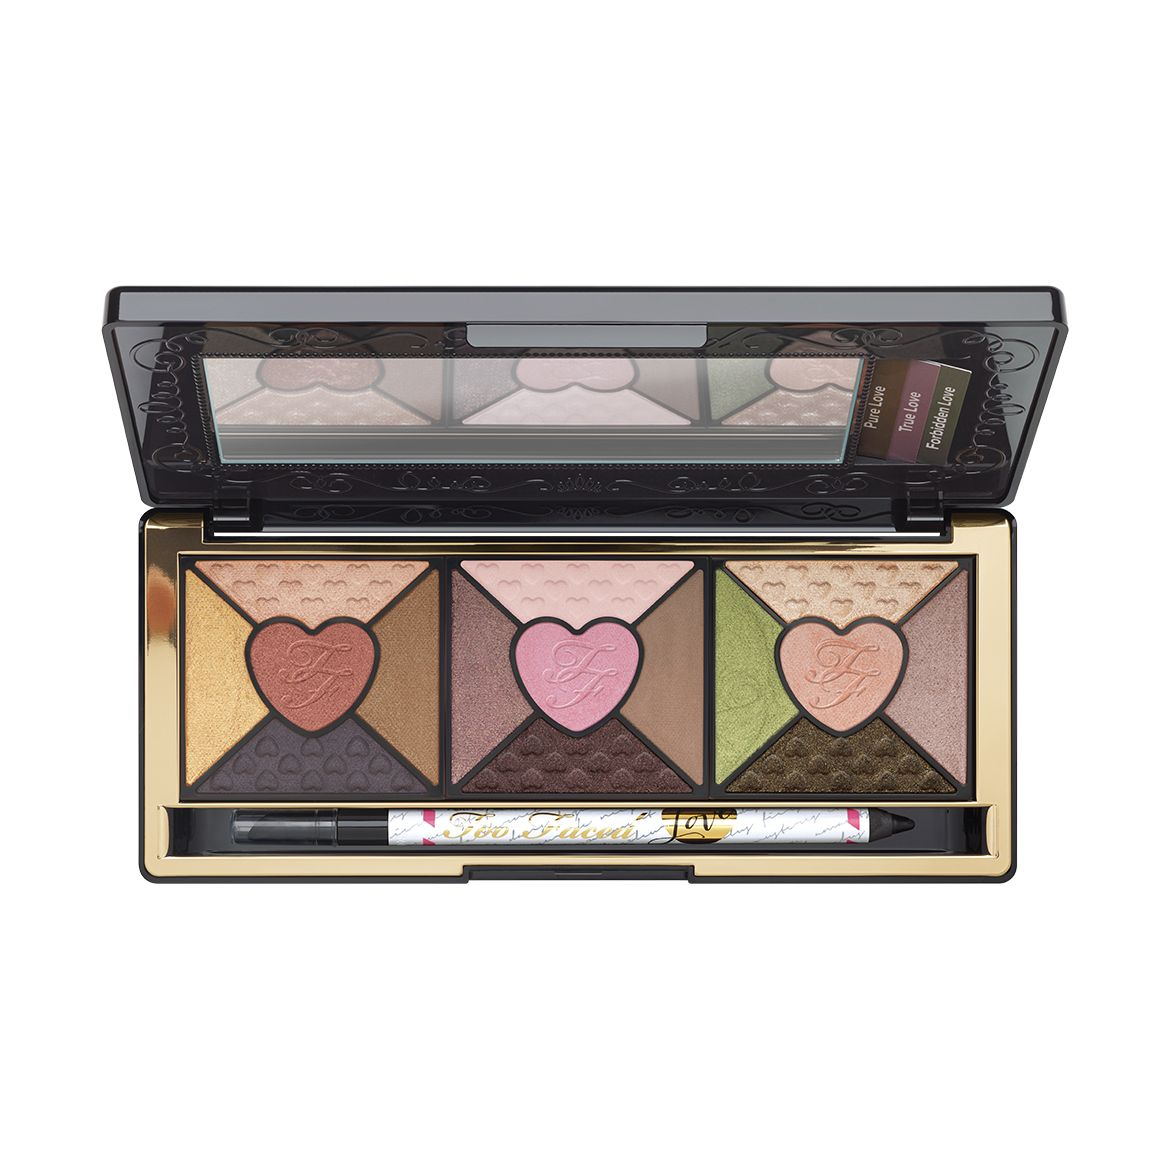 Love Palette Eye Shadow Collection - Too Faced